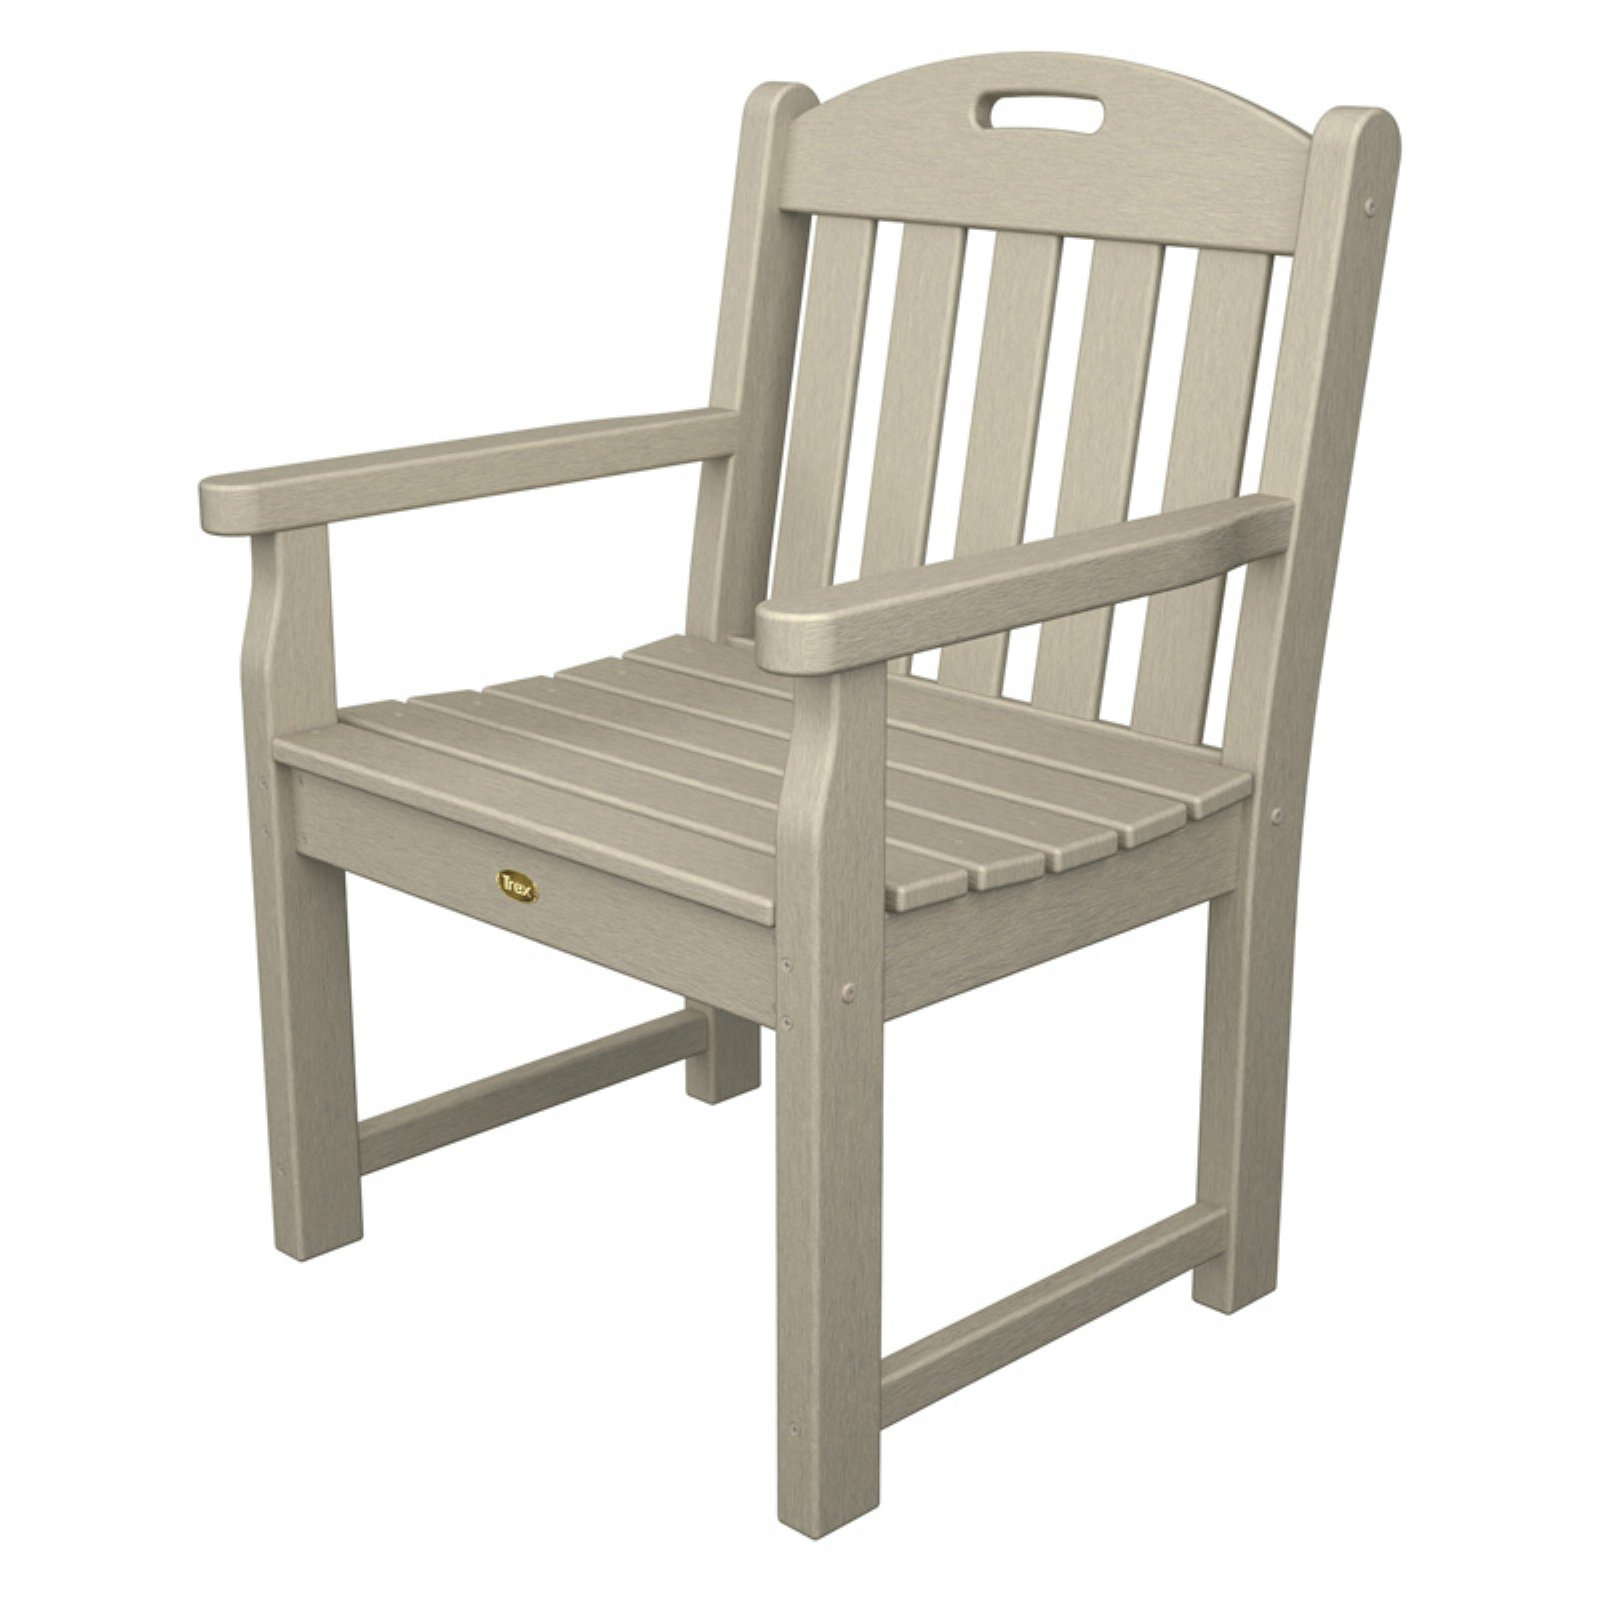 Trex Outdoor Furniture Recycled Plastic Yacht Club Garden Chair